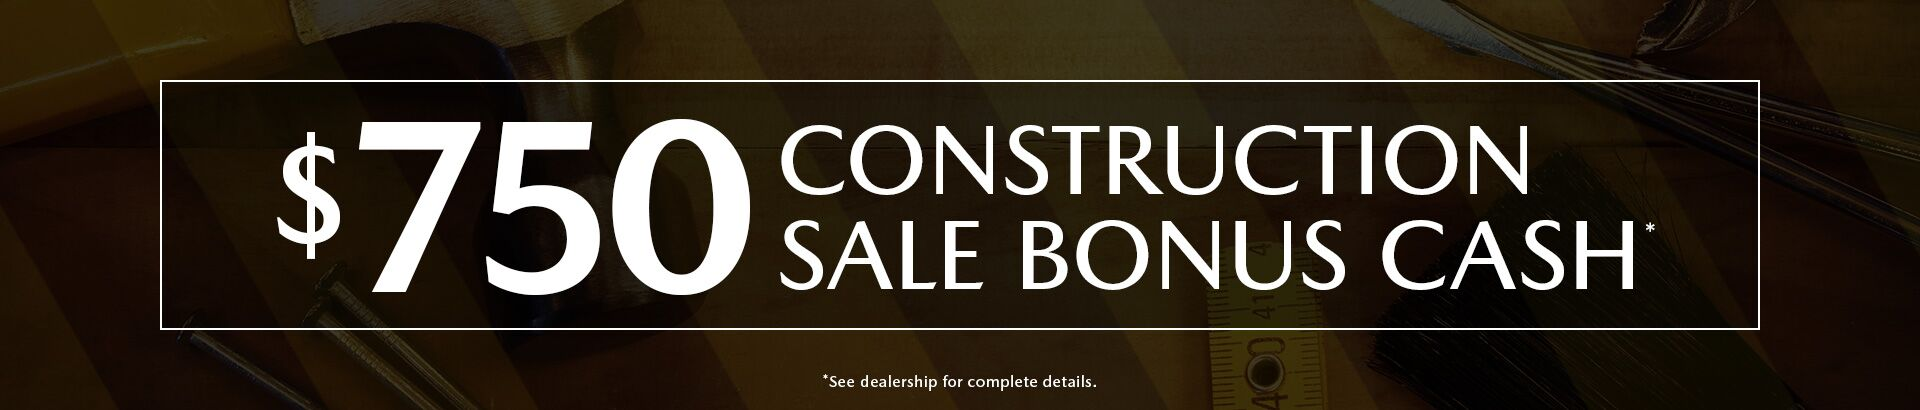 $750 Construction Sale Bonus Cash